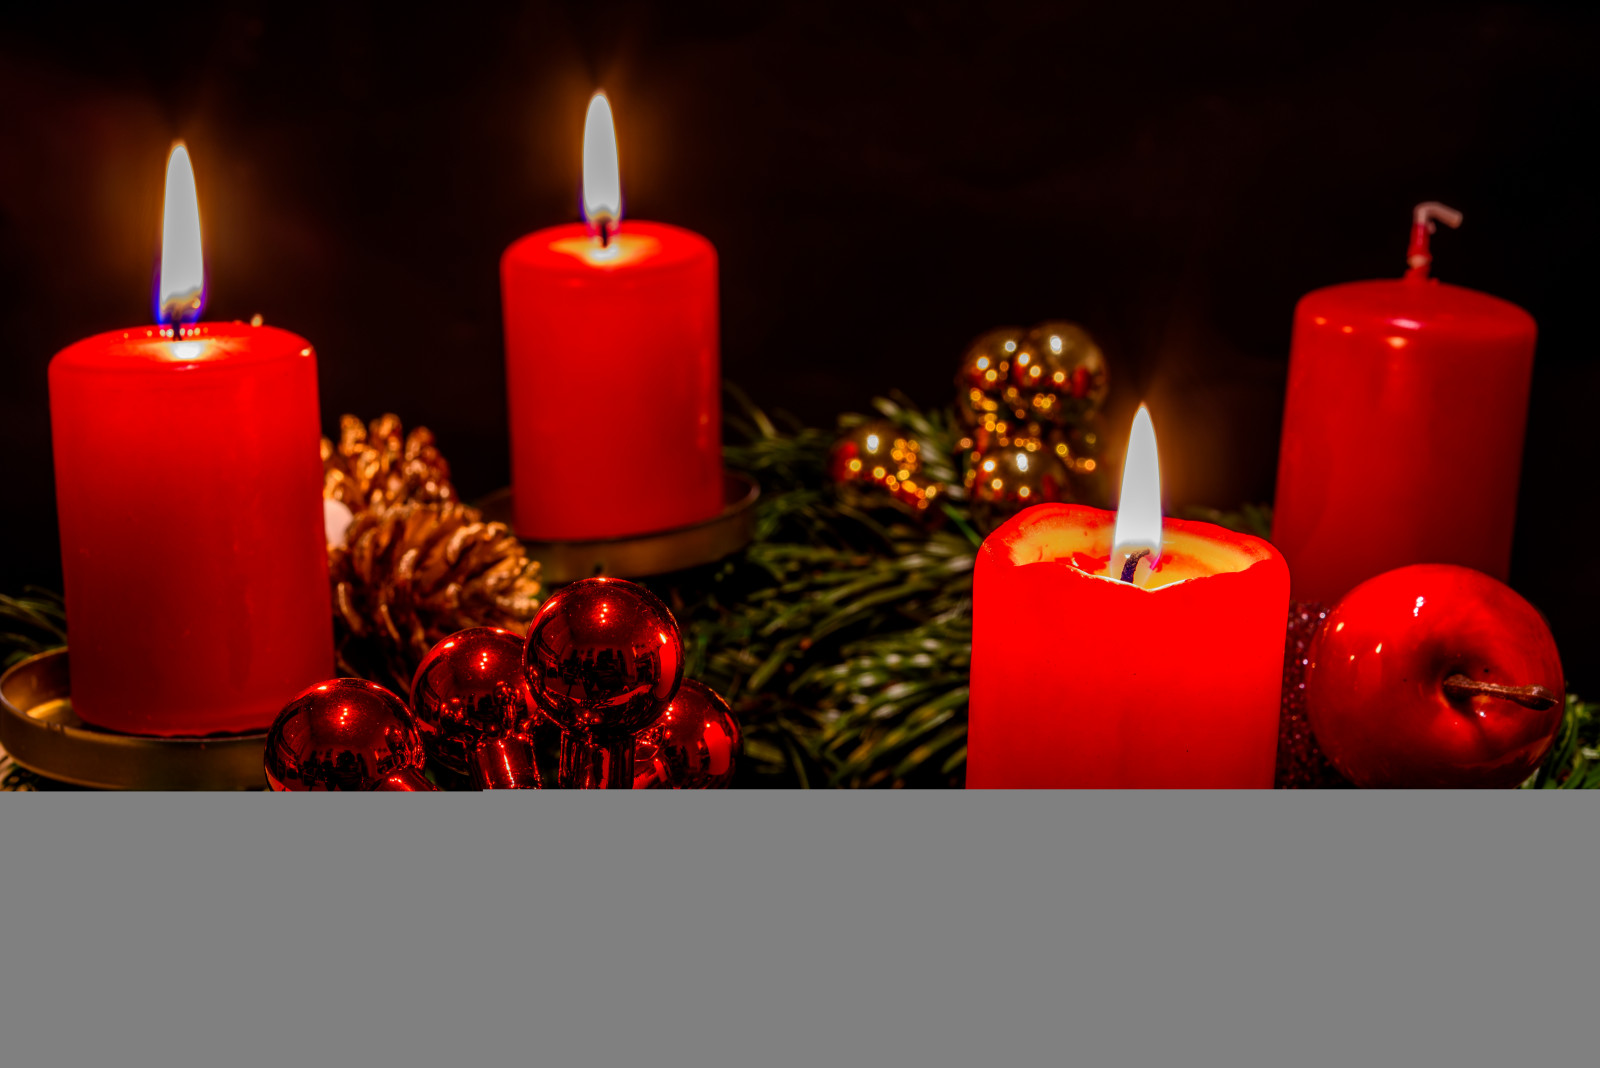 Advent Weihnachten Wallpaper Red Candles Christmas Holiday Lightroom Lowkey